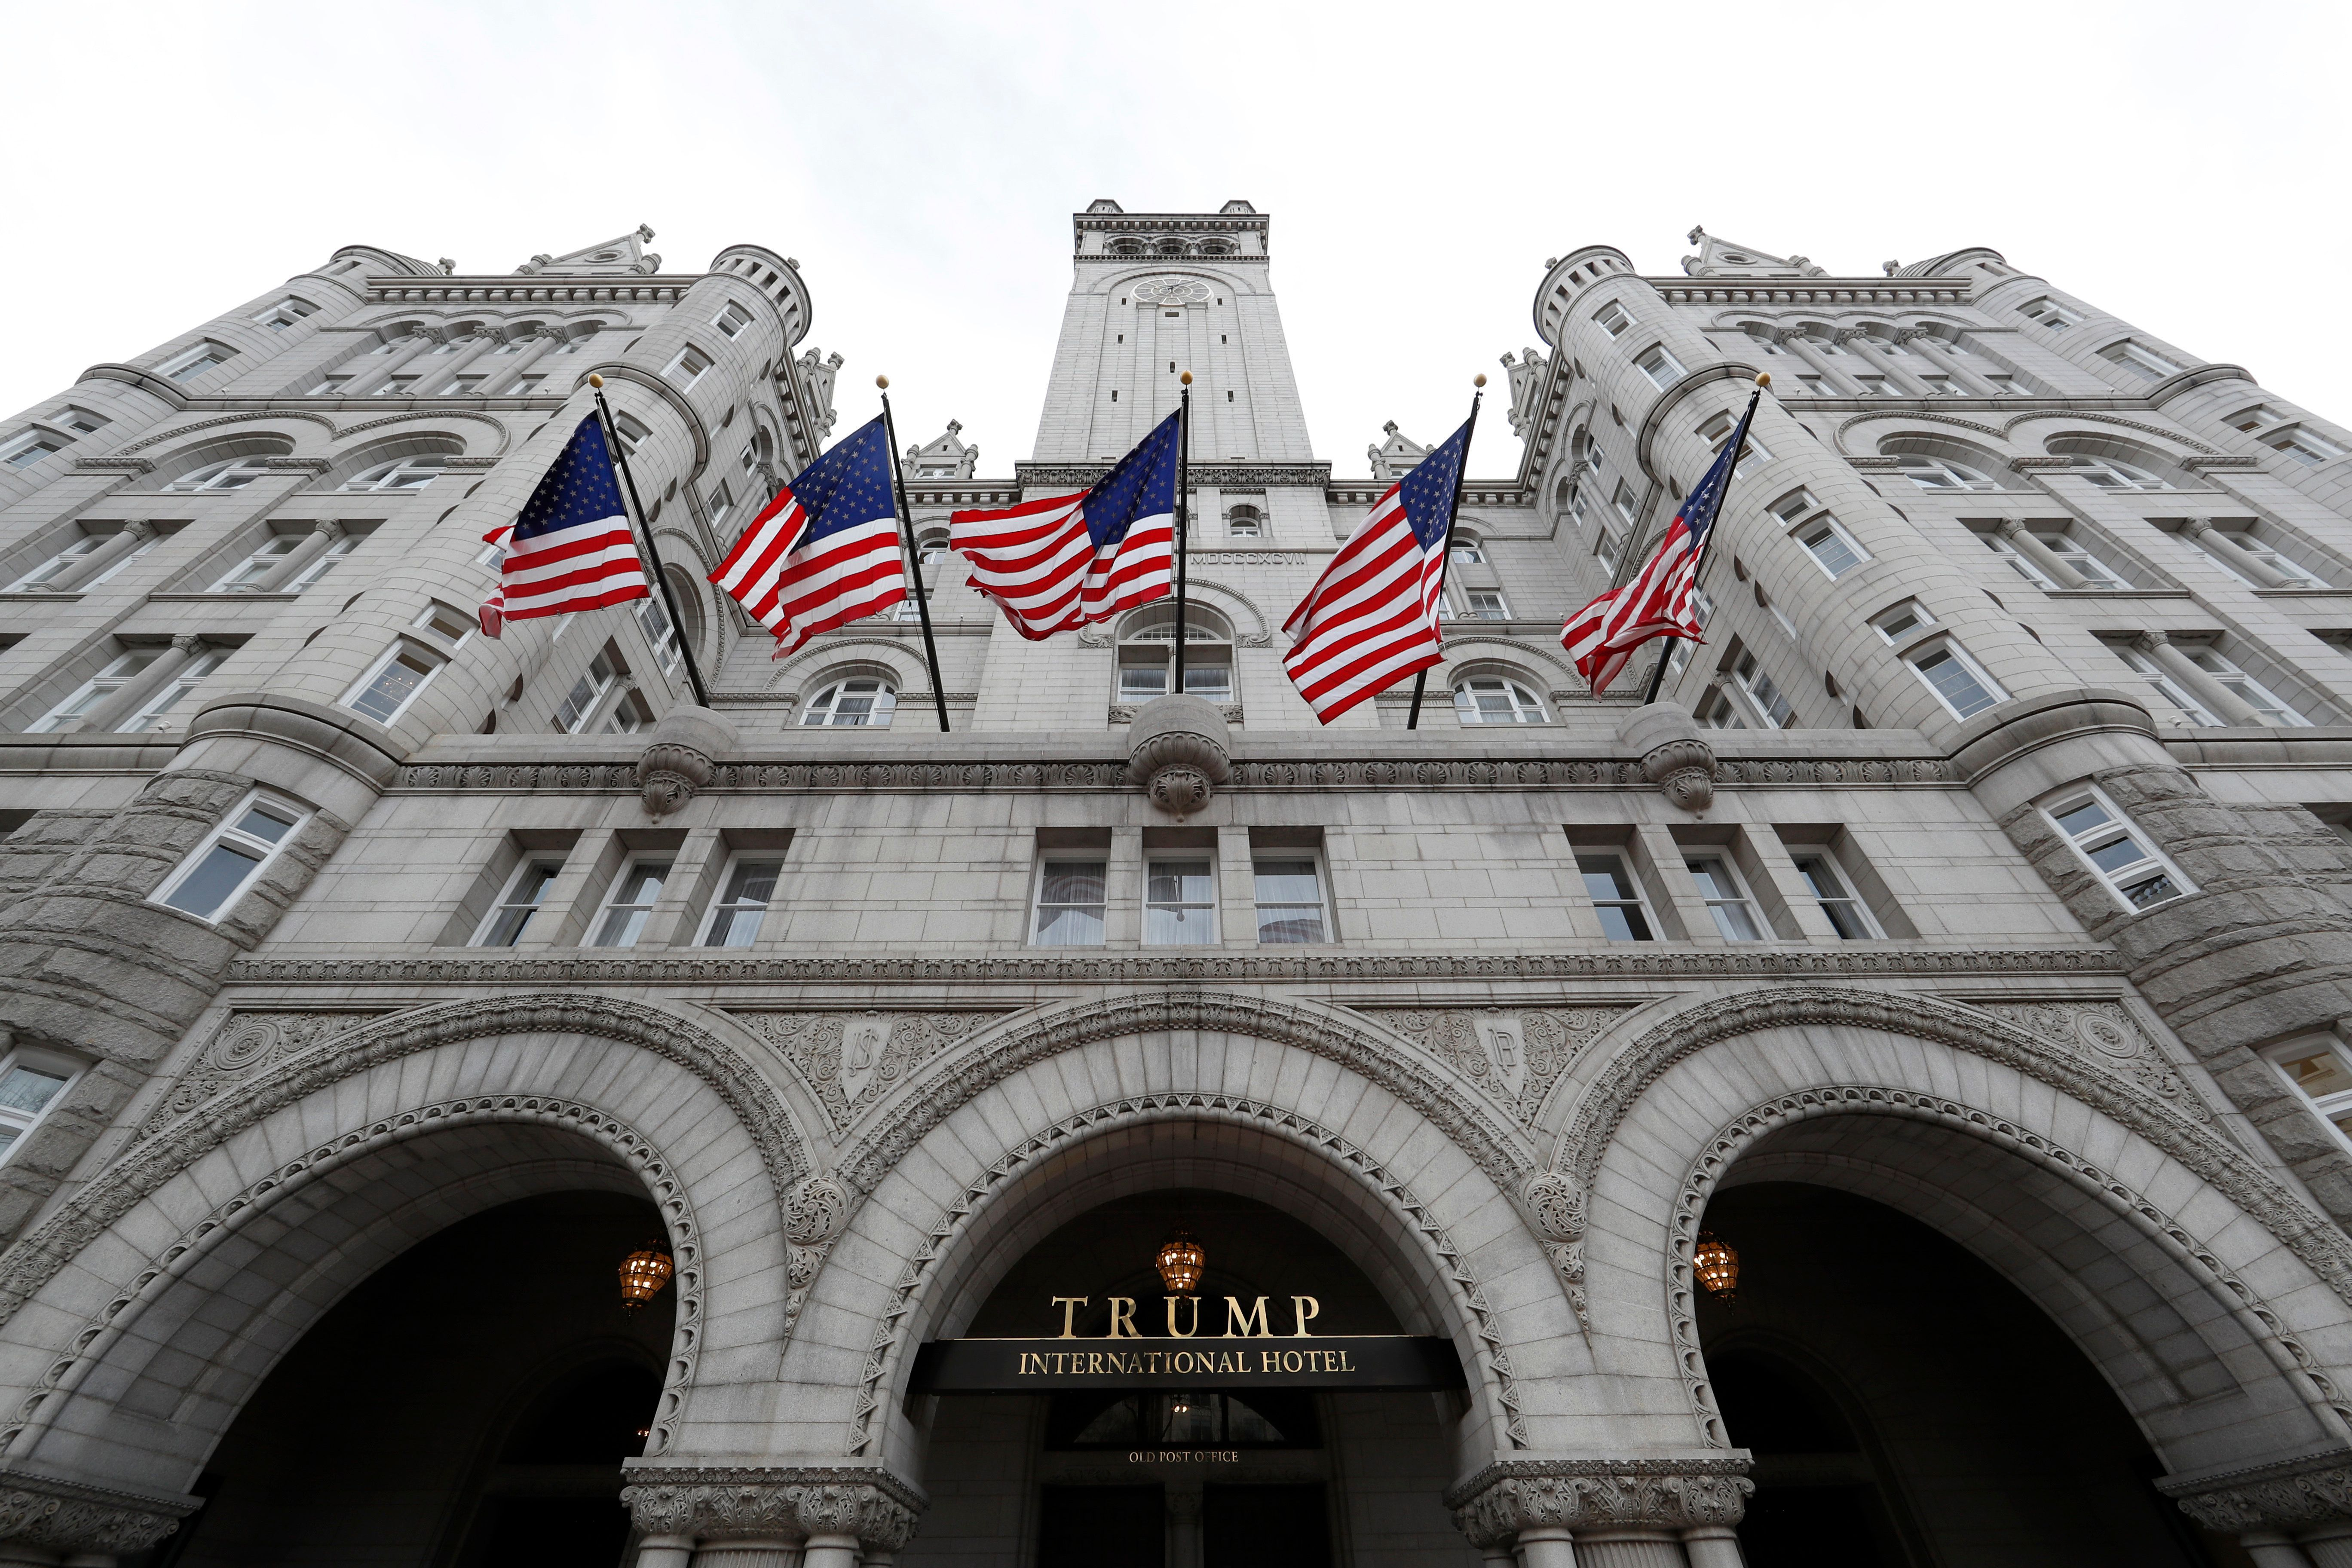 huffingtonpost.com - Paul Blumenthal - Agency That Approved Trump's Hotel Lease Ignored The Constitution: Report